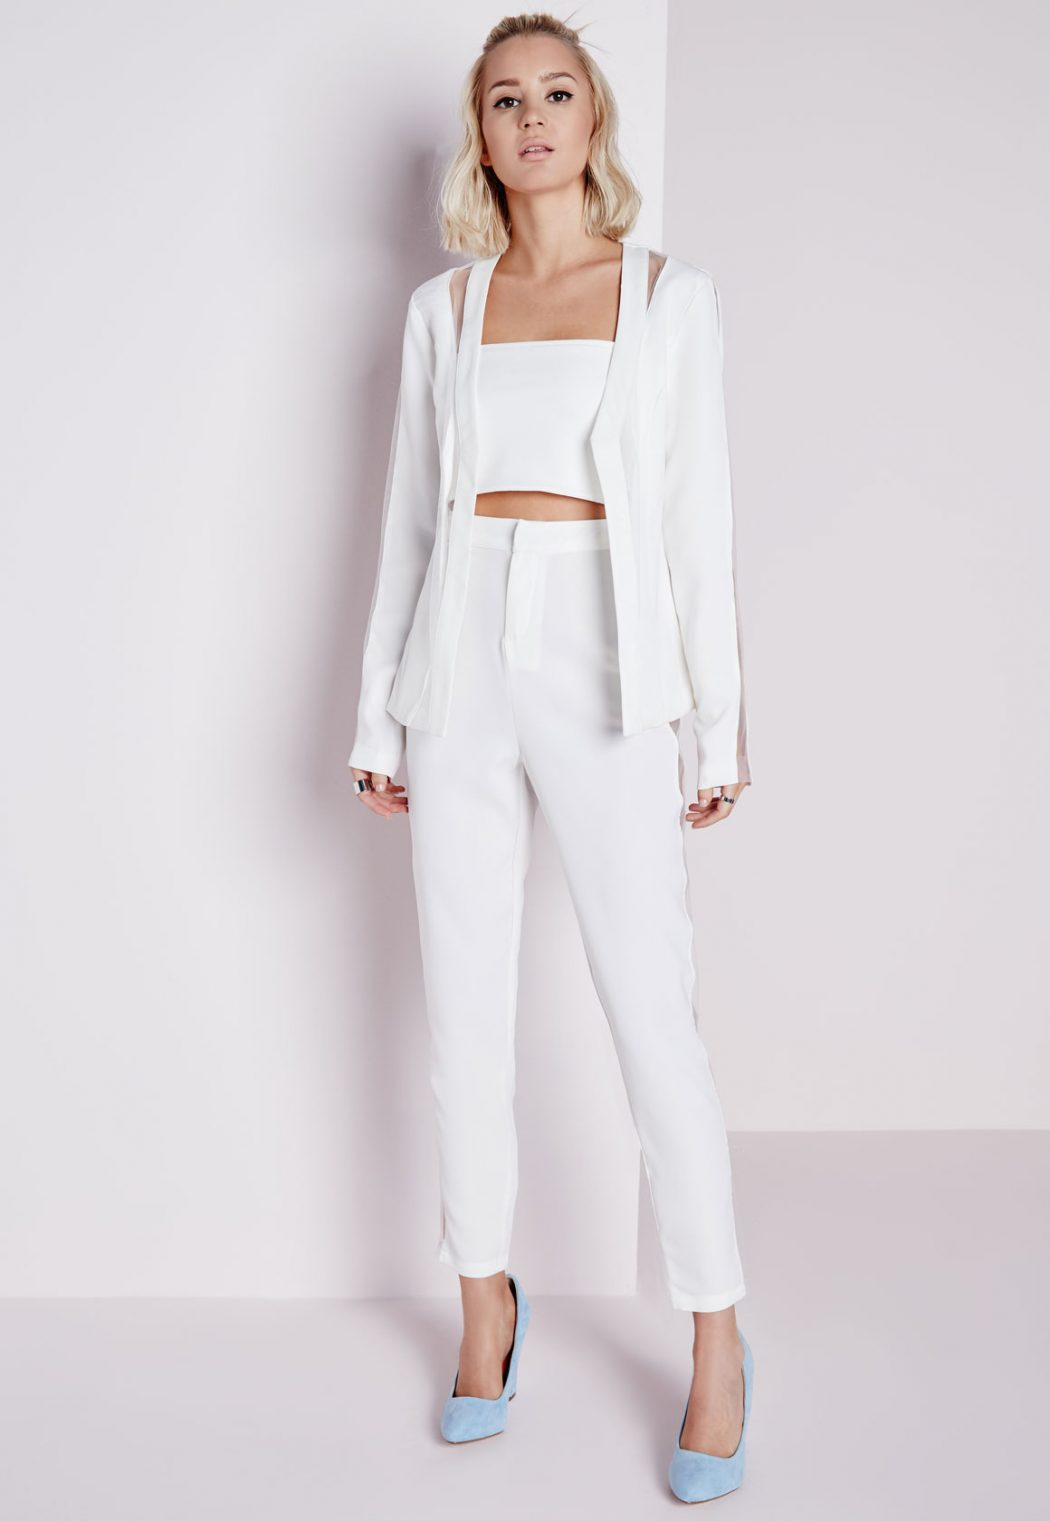 White-Trousers1 20+ Hottest White Party Outfits Ideas for Women in 2020